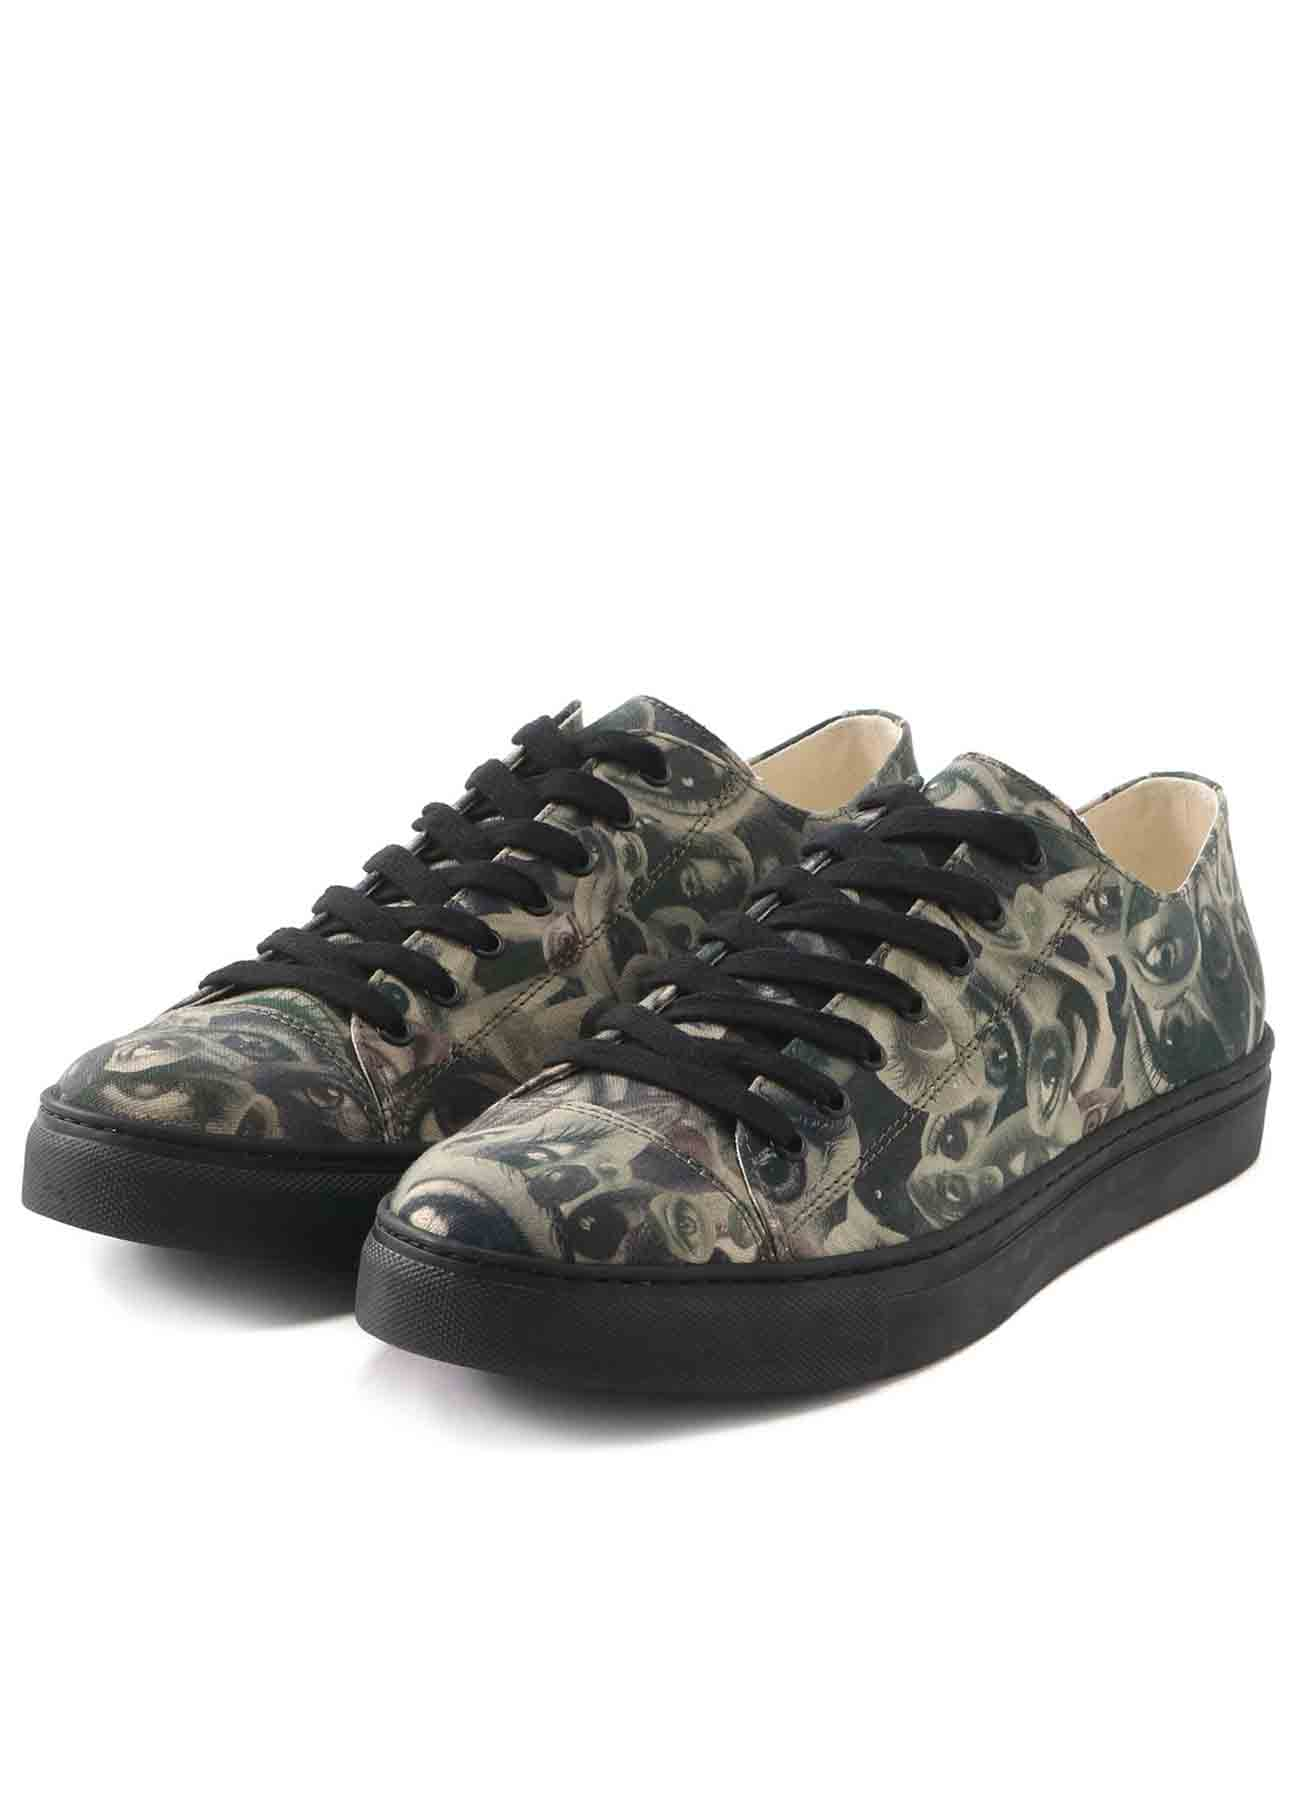 EYE PRINT CANVAS LOW TOP PRINT SNEAKERS